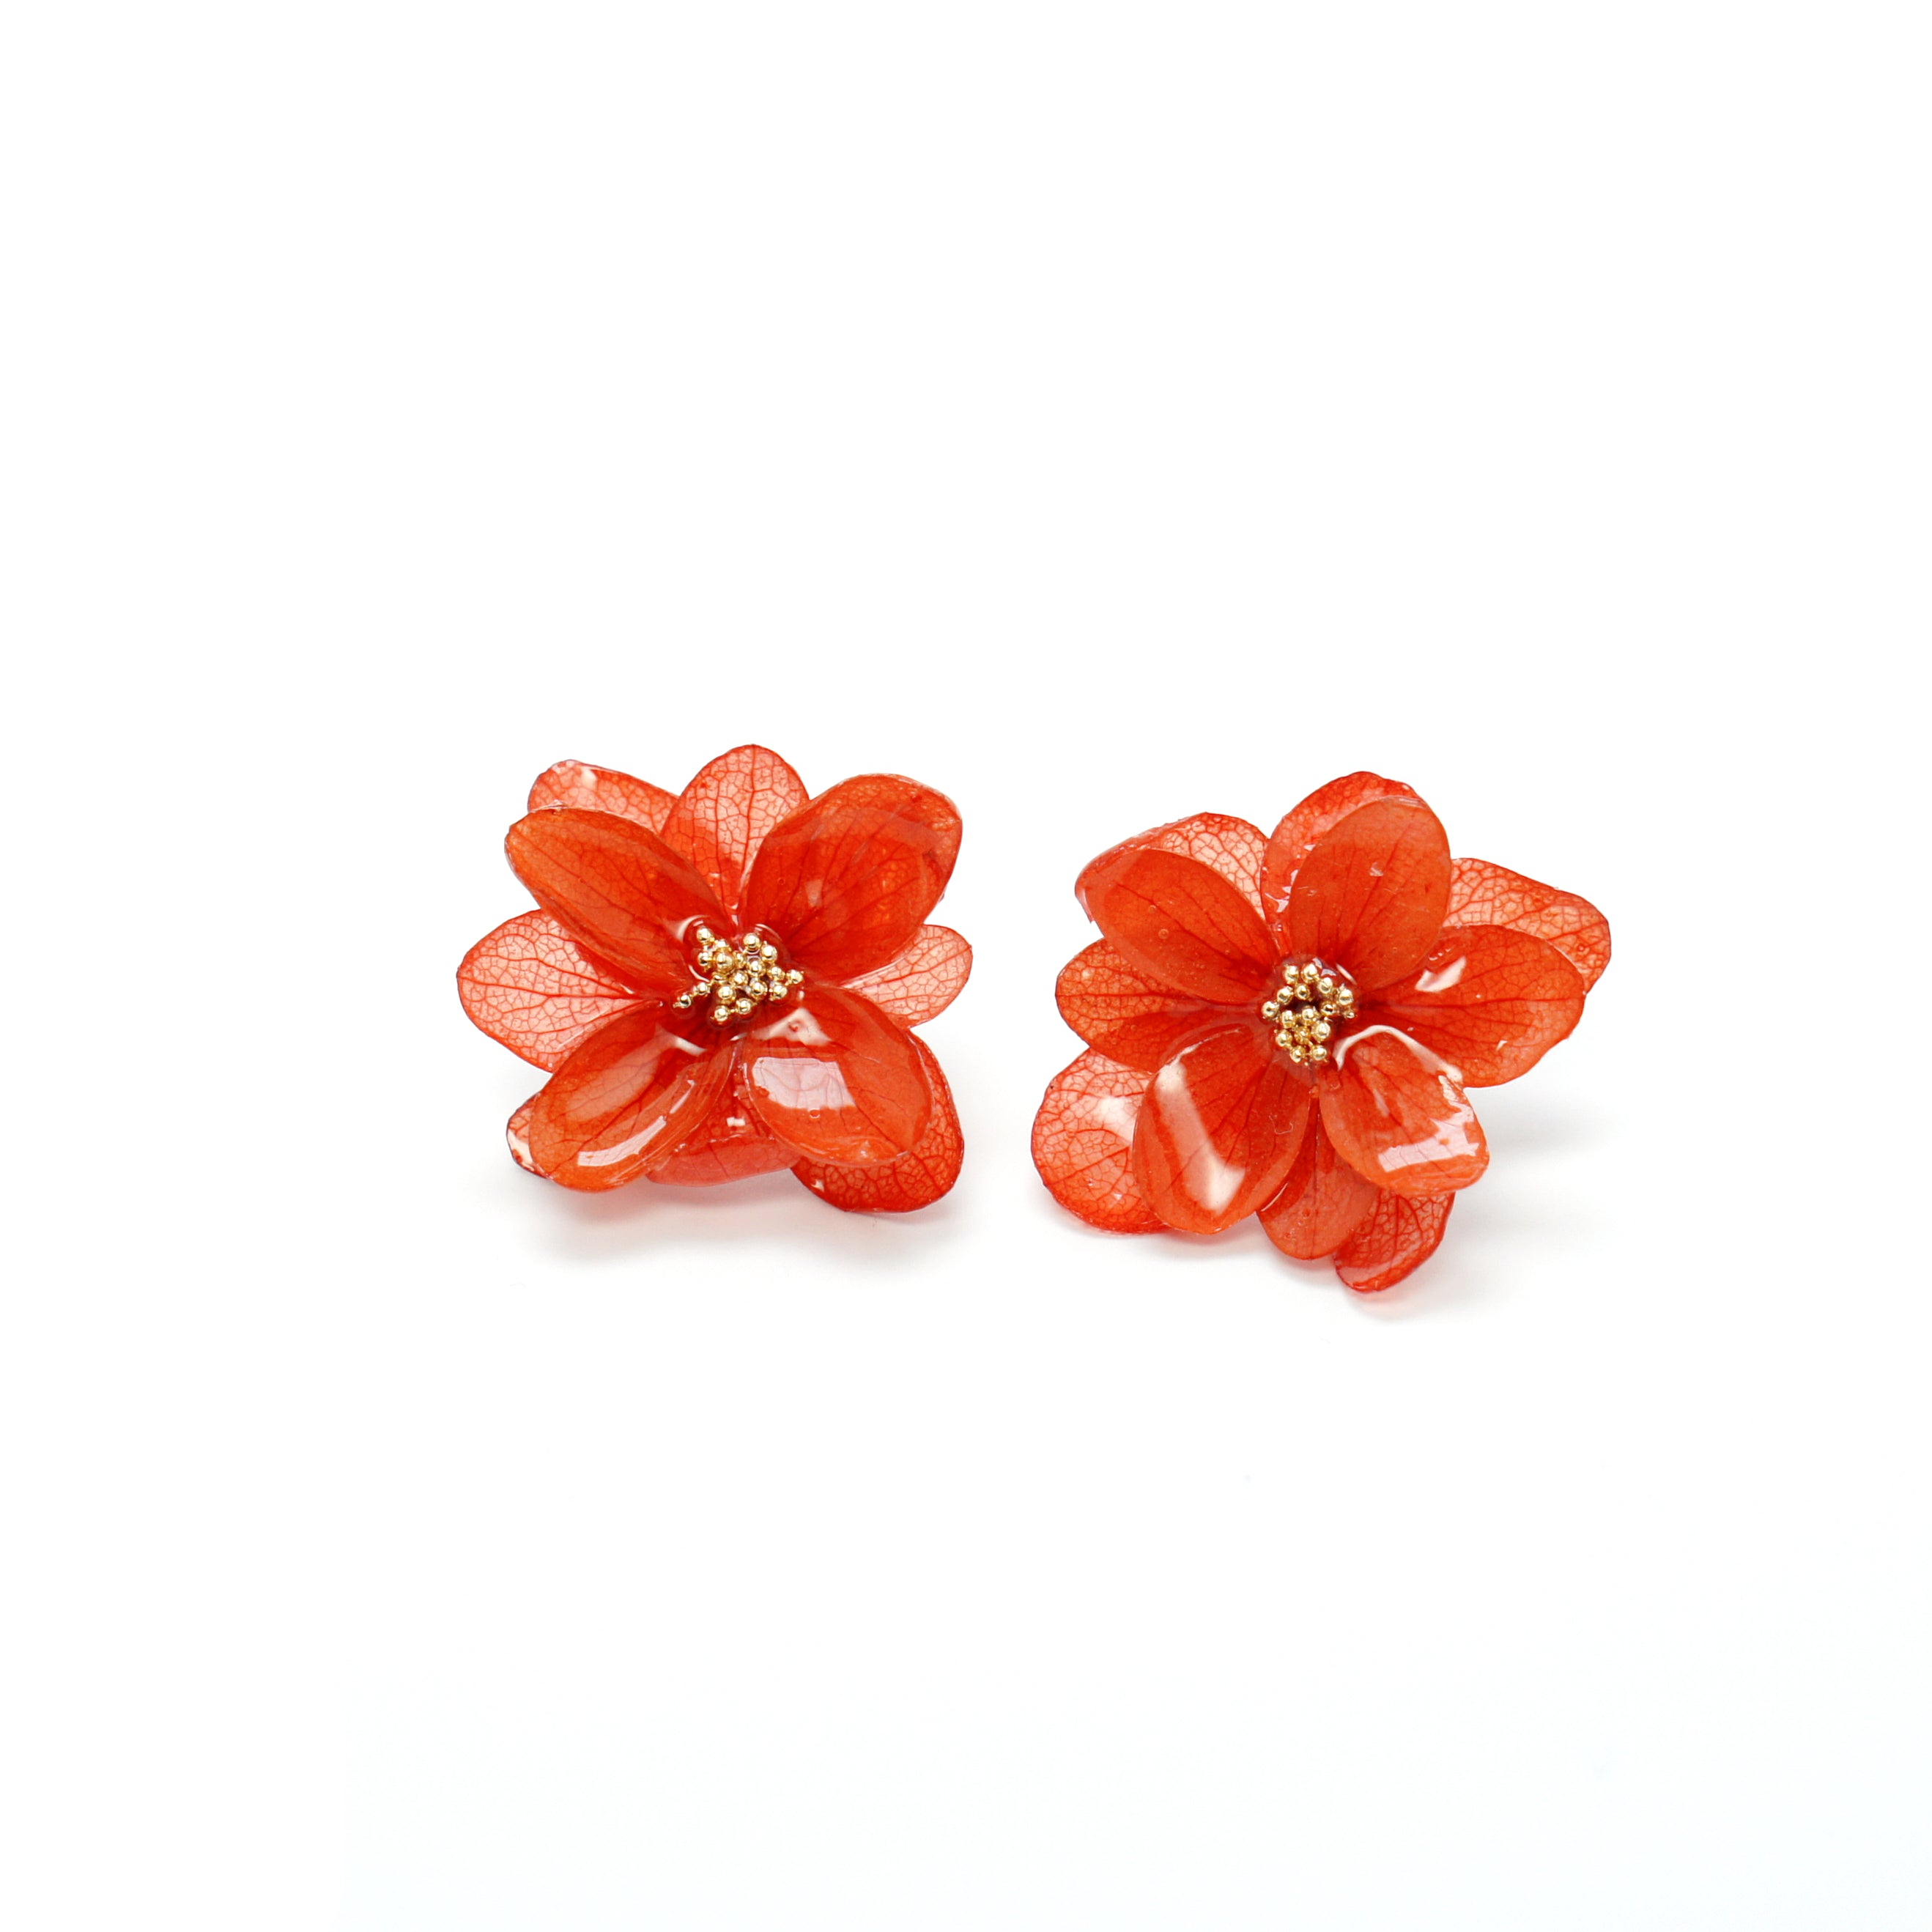 [Season's Specials] *REAL FLOWER* Mariesii Layered Red Hydrangea Flower Stud Earrings